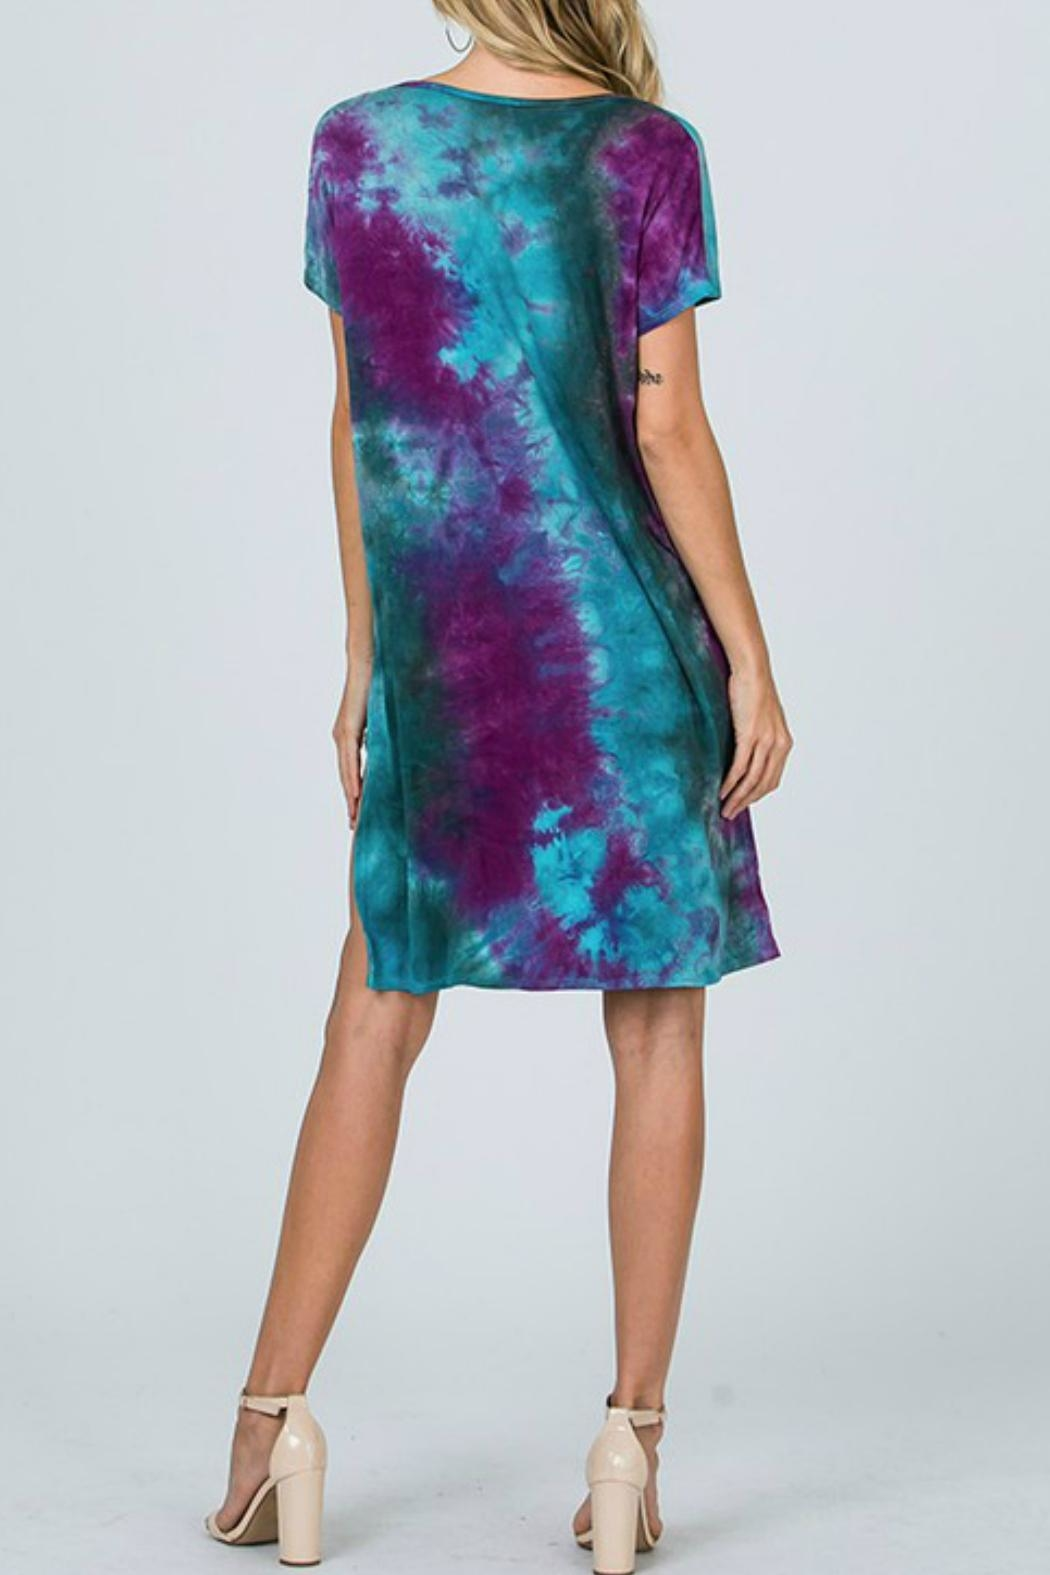 CY Fashion Tie-Dye High-Lo Top - Side Cropped Image